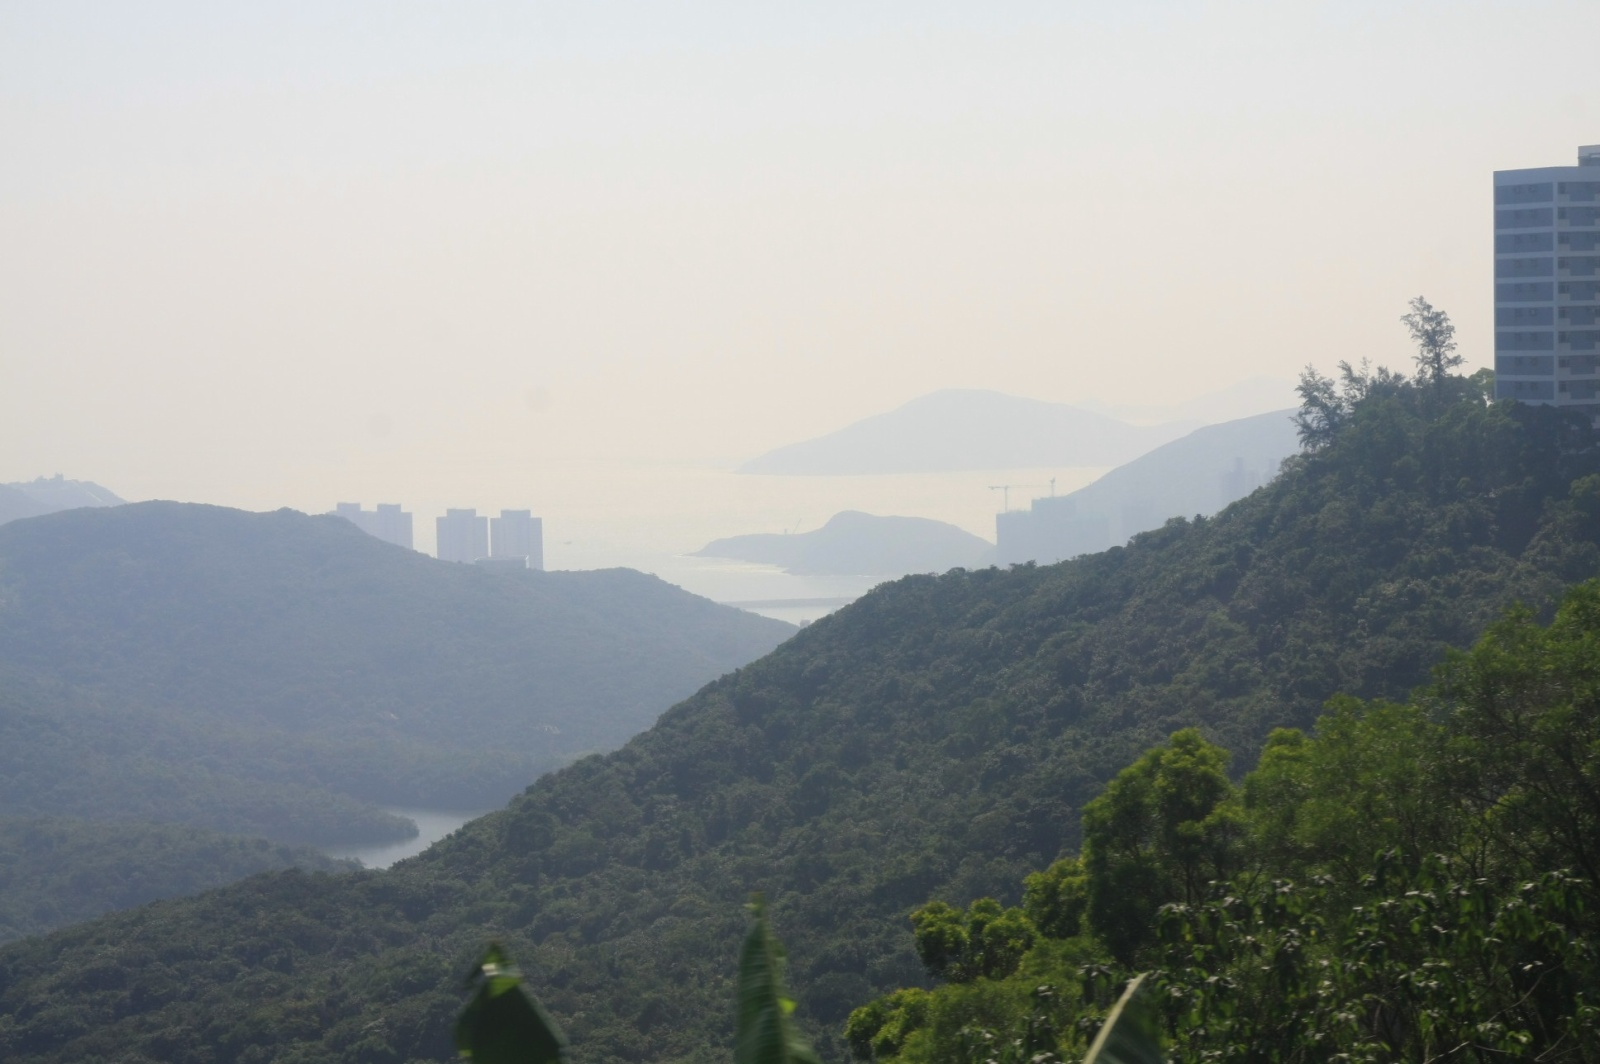 The other side of the Moon - Southern Hong Kong Island is almost always seen against the sun